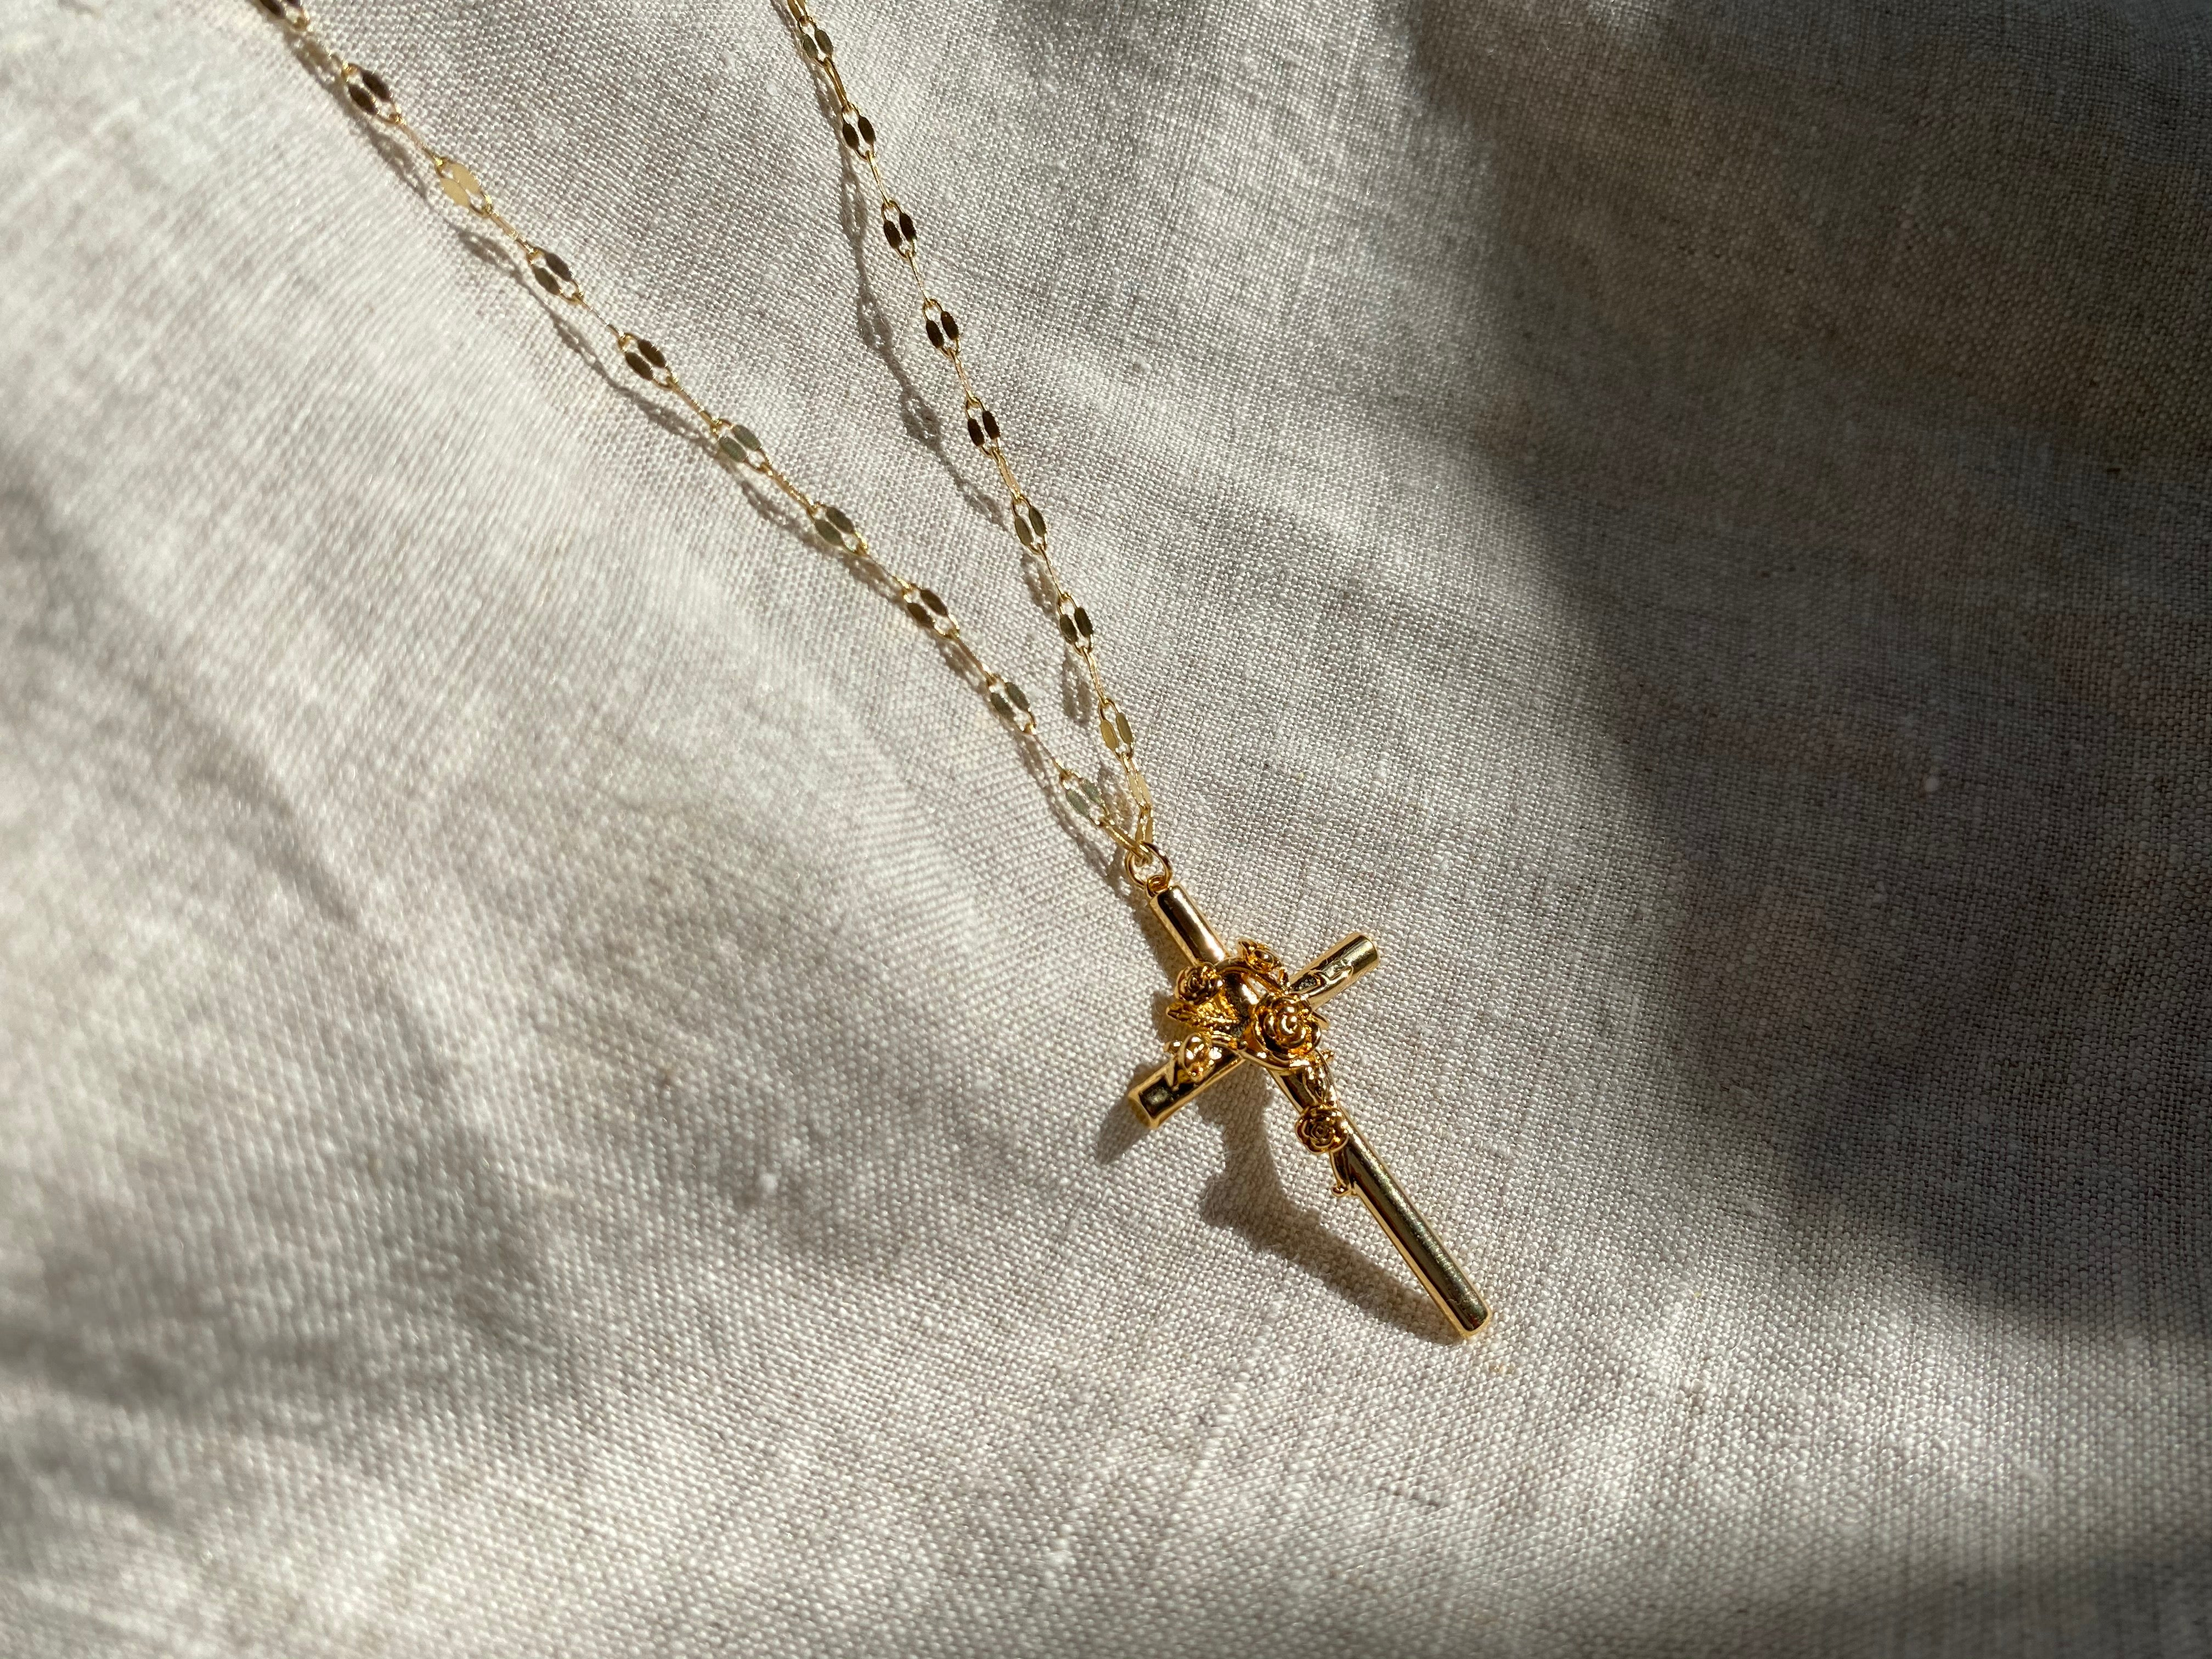 rose cross necklace, rose cross, rose cross chain, cross necklace